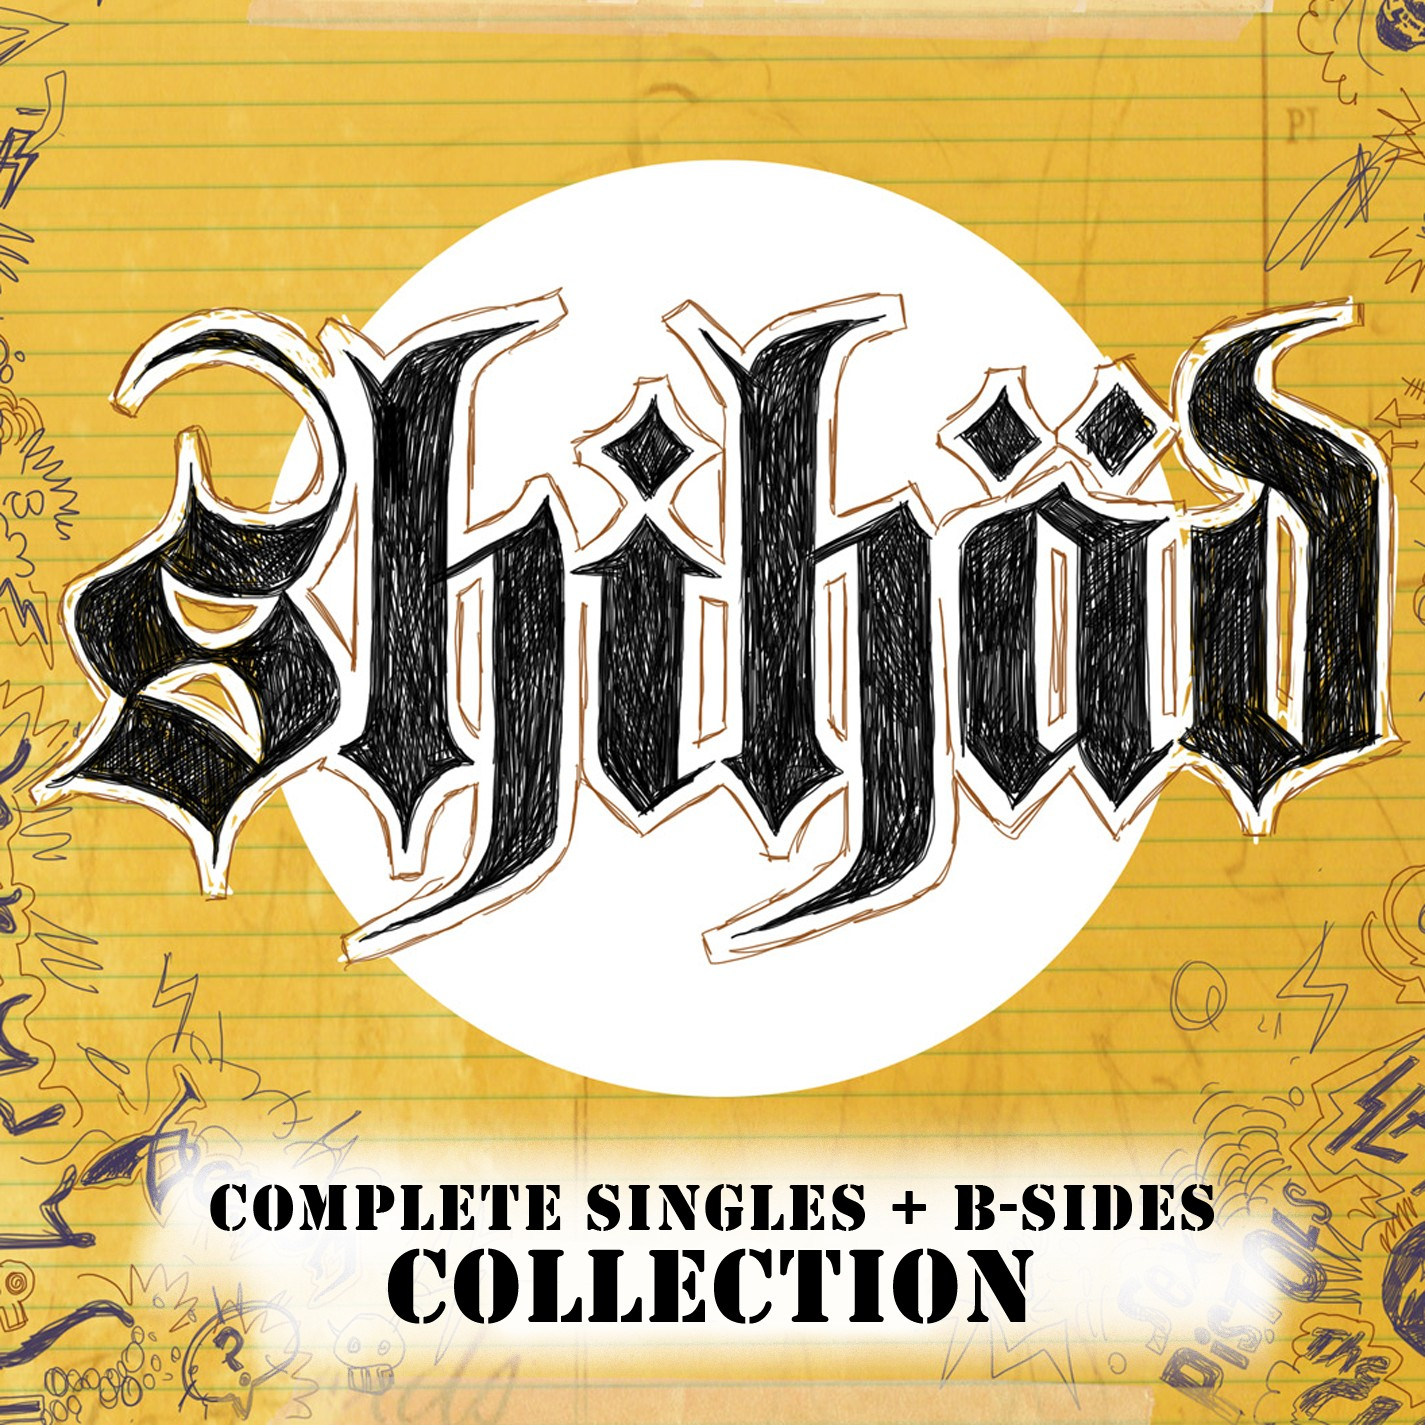 Shihad COLLECTION iTUNES.jpg